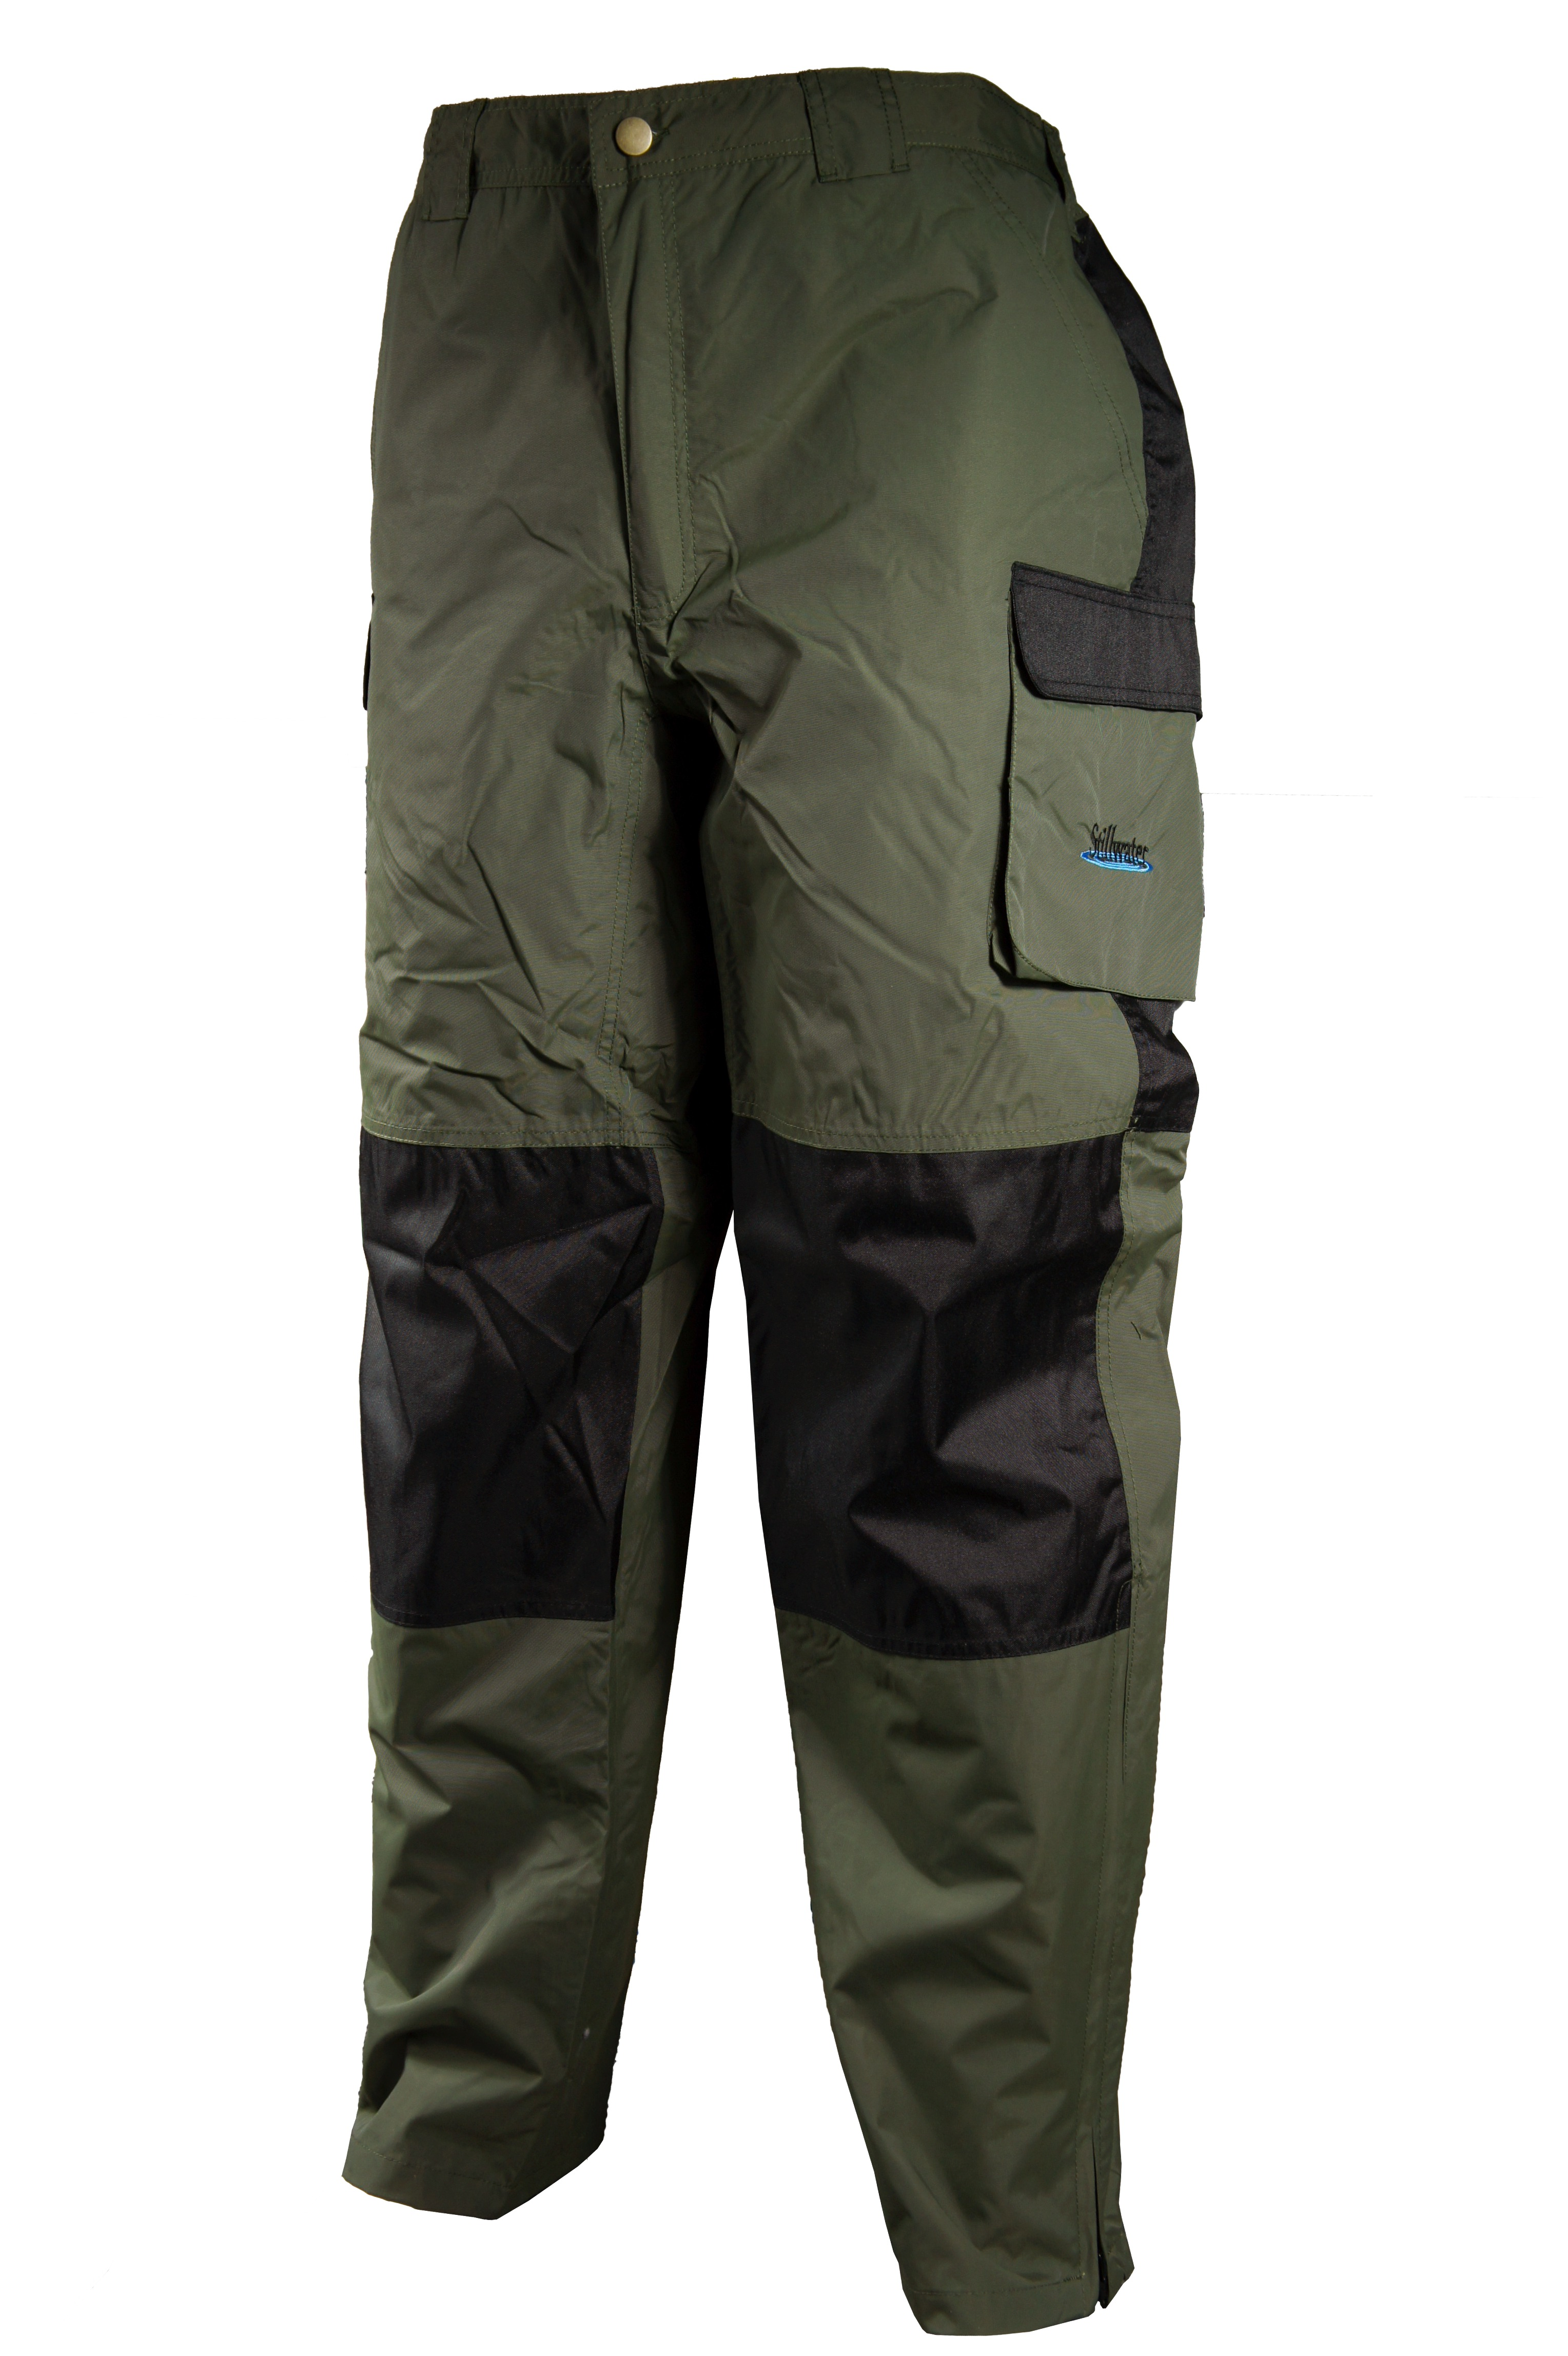 Stillwater waterproof trousers glasgow angling centre for Waterproof fishing clothing